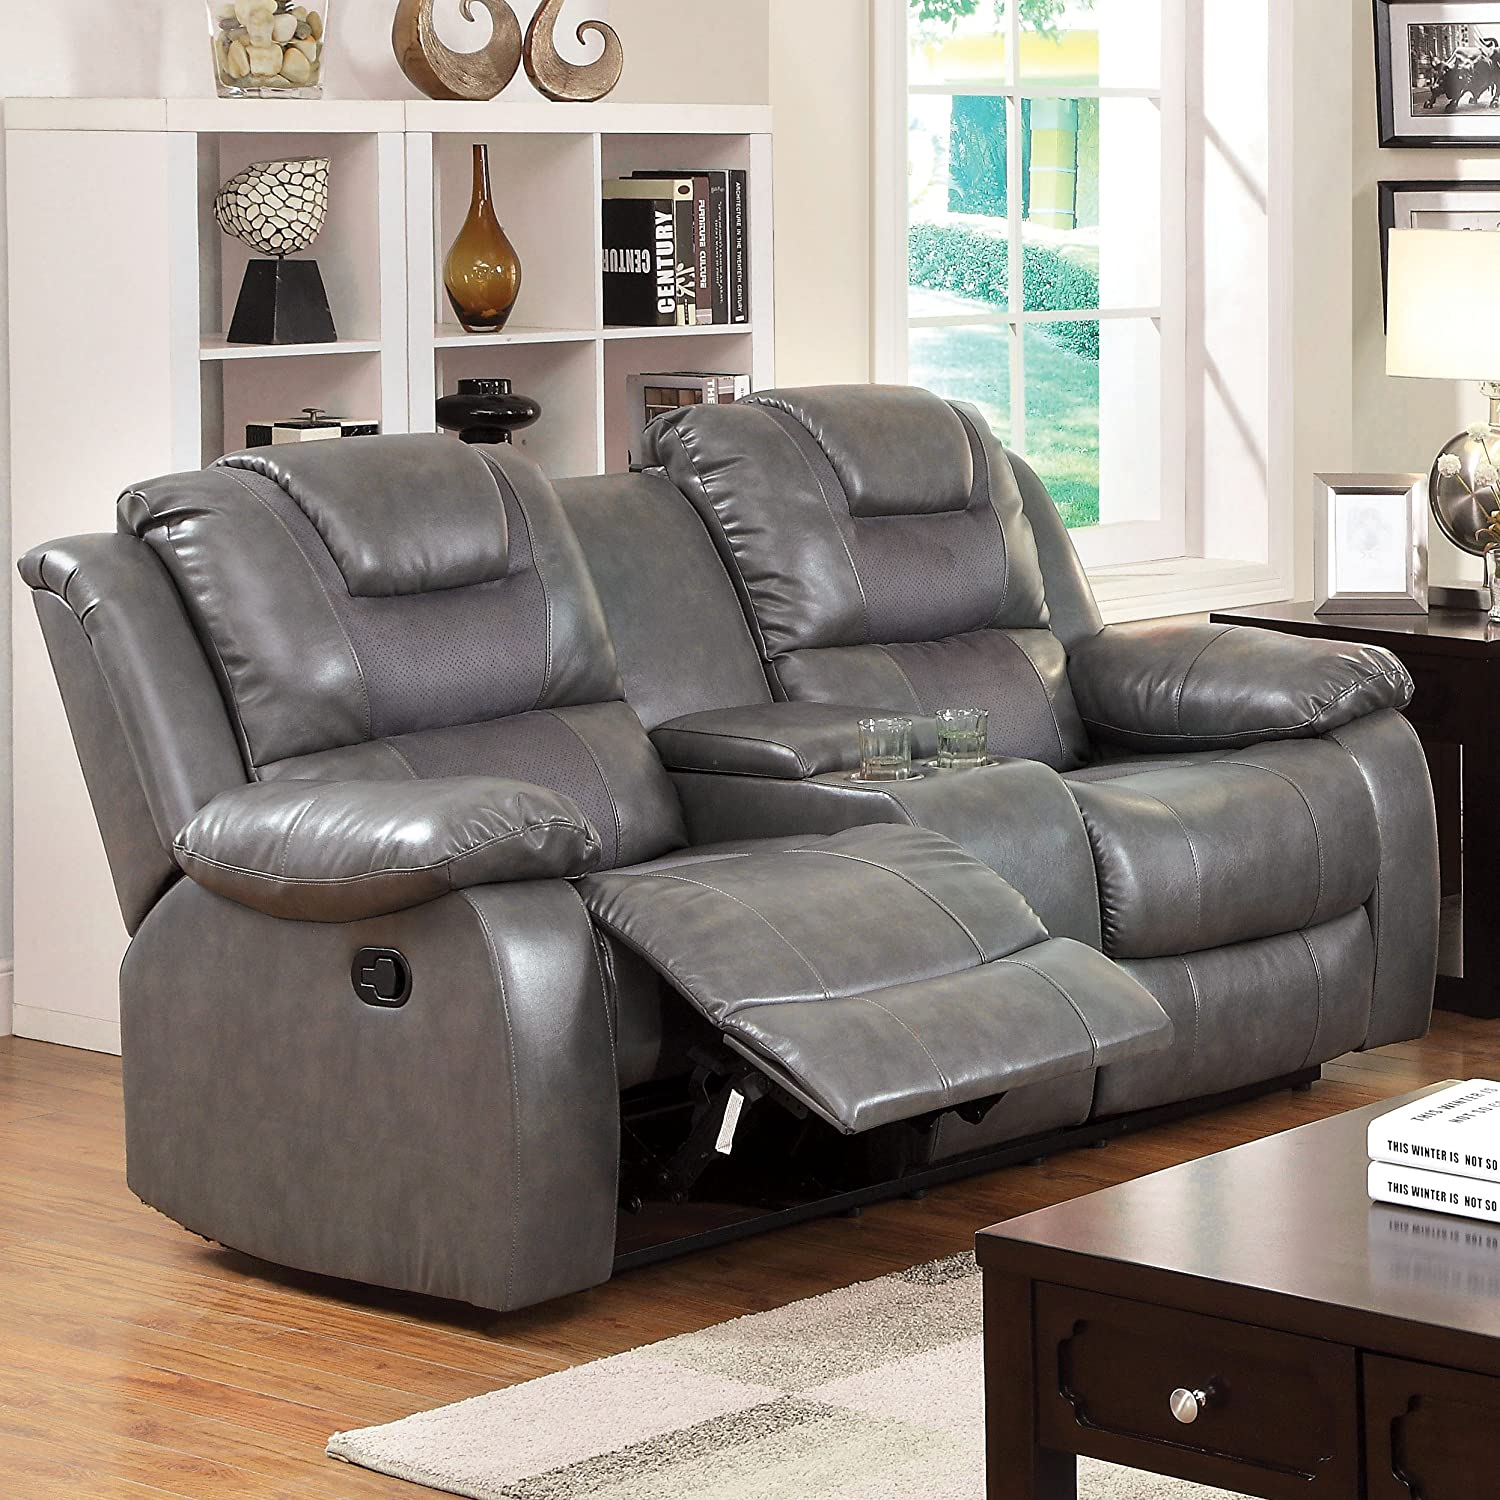 recliners of awesome decor plete home oversized lots tempting ideas big photograph loveseat with to recliner